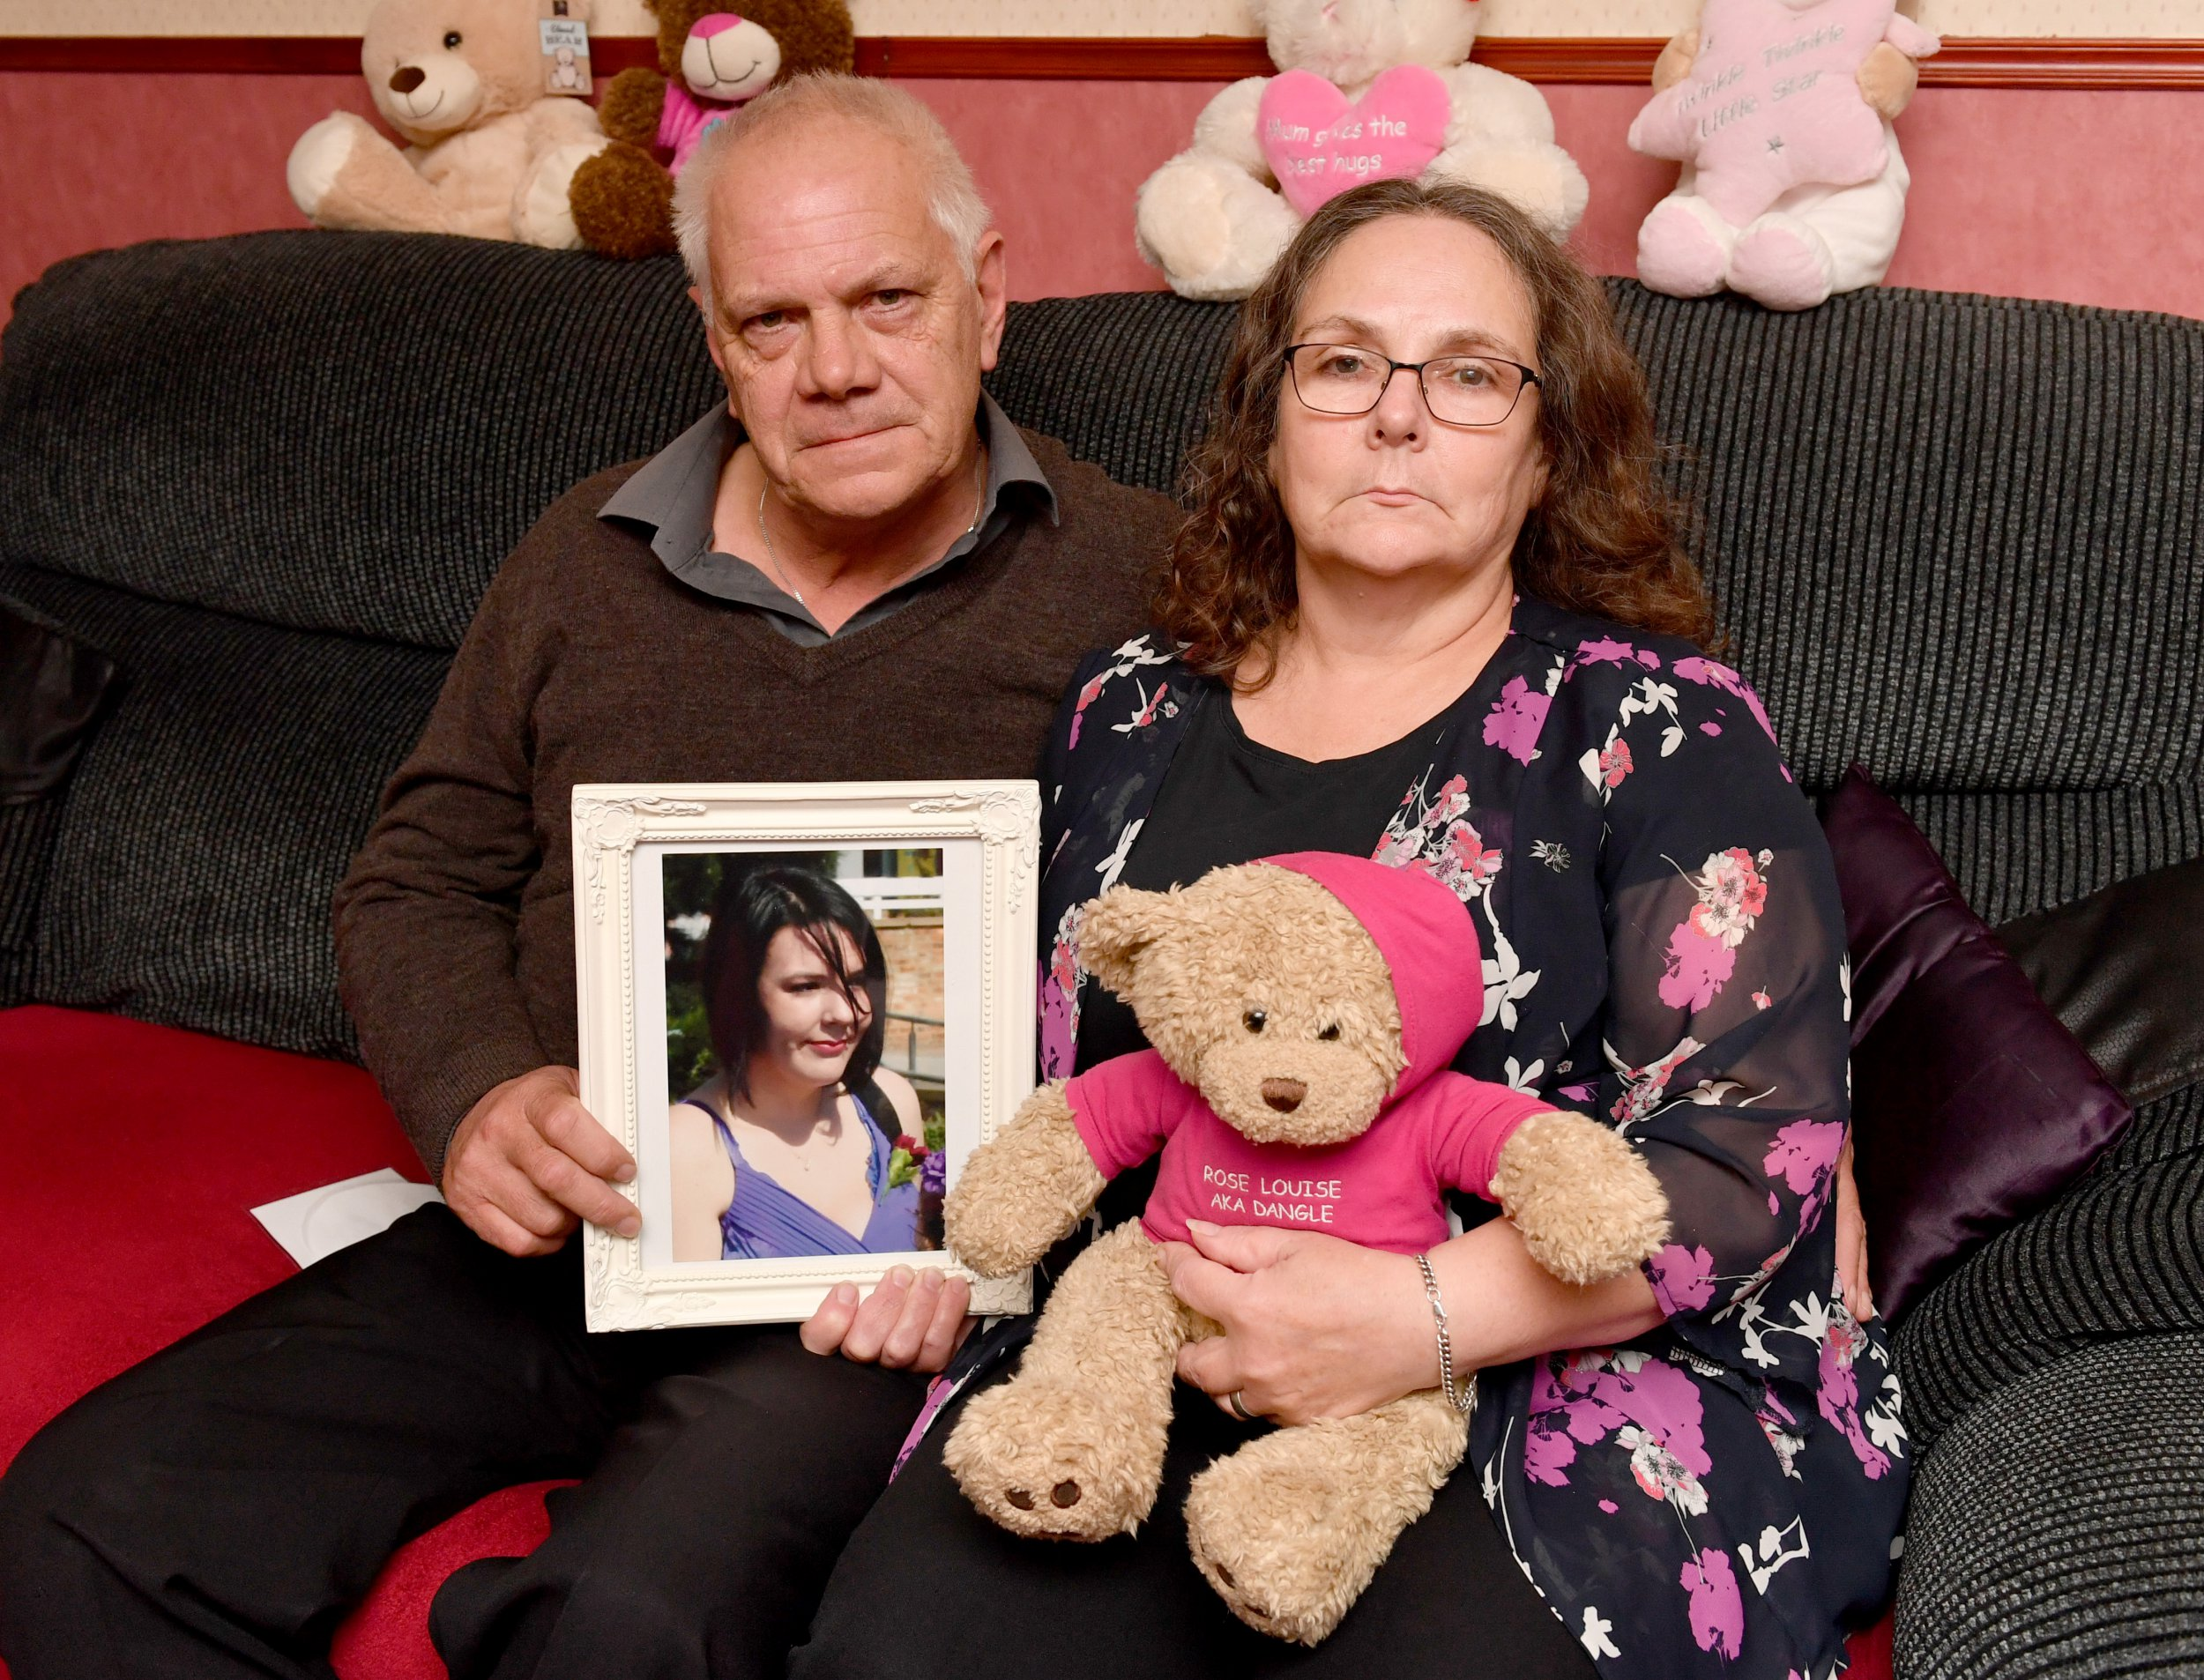 **Embargoed until 1pm on 21/10/18. Online Usage fee ?75 per photo. Print fee ?150 per photo** Susan and Kevin Blunnie whose daughter Eystna was murdered by her ex boyfriend Tony McLernon in June 2012 two days before she was due to give birth